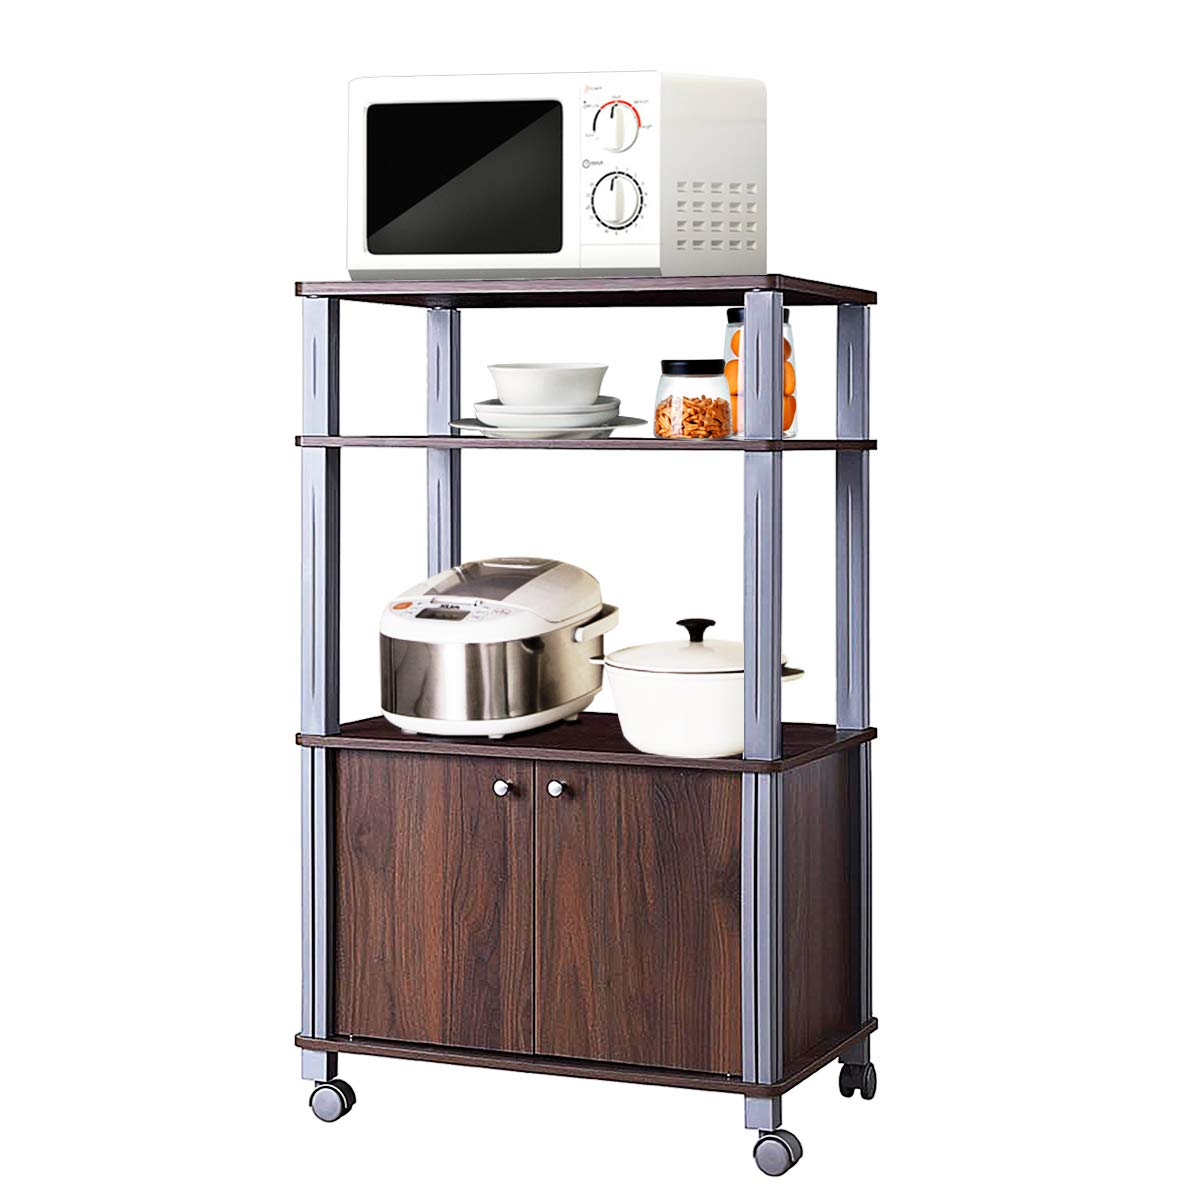 Giantex Rolling Kitchen Baker's Rack Microwave Oven Stand Utility Shelf on Wheels Storage Cart Spice Workstation Organizer with 2-Tier Shelf and Cabinet, Kitchen or Dining Room Furniture (Walnut) by Giantex